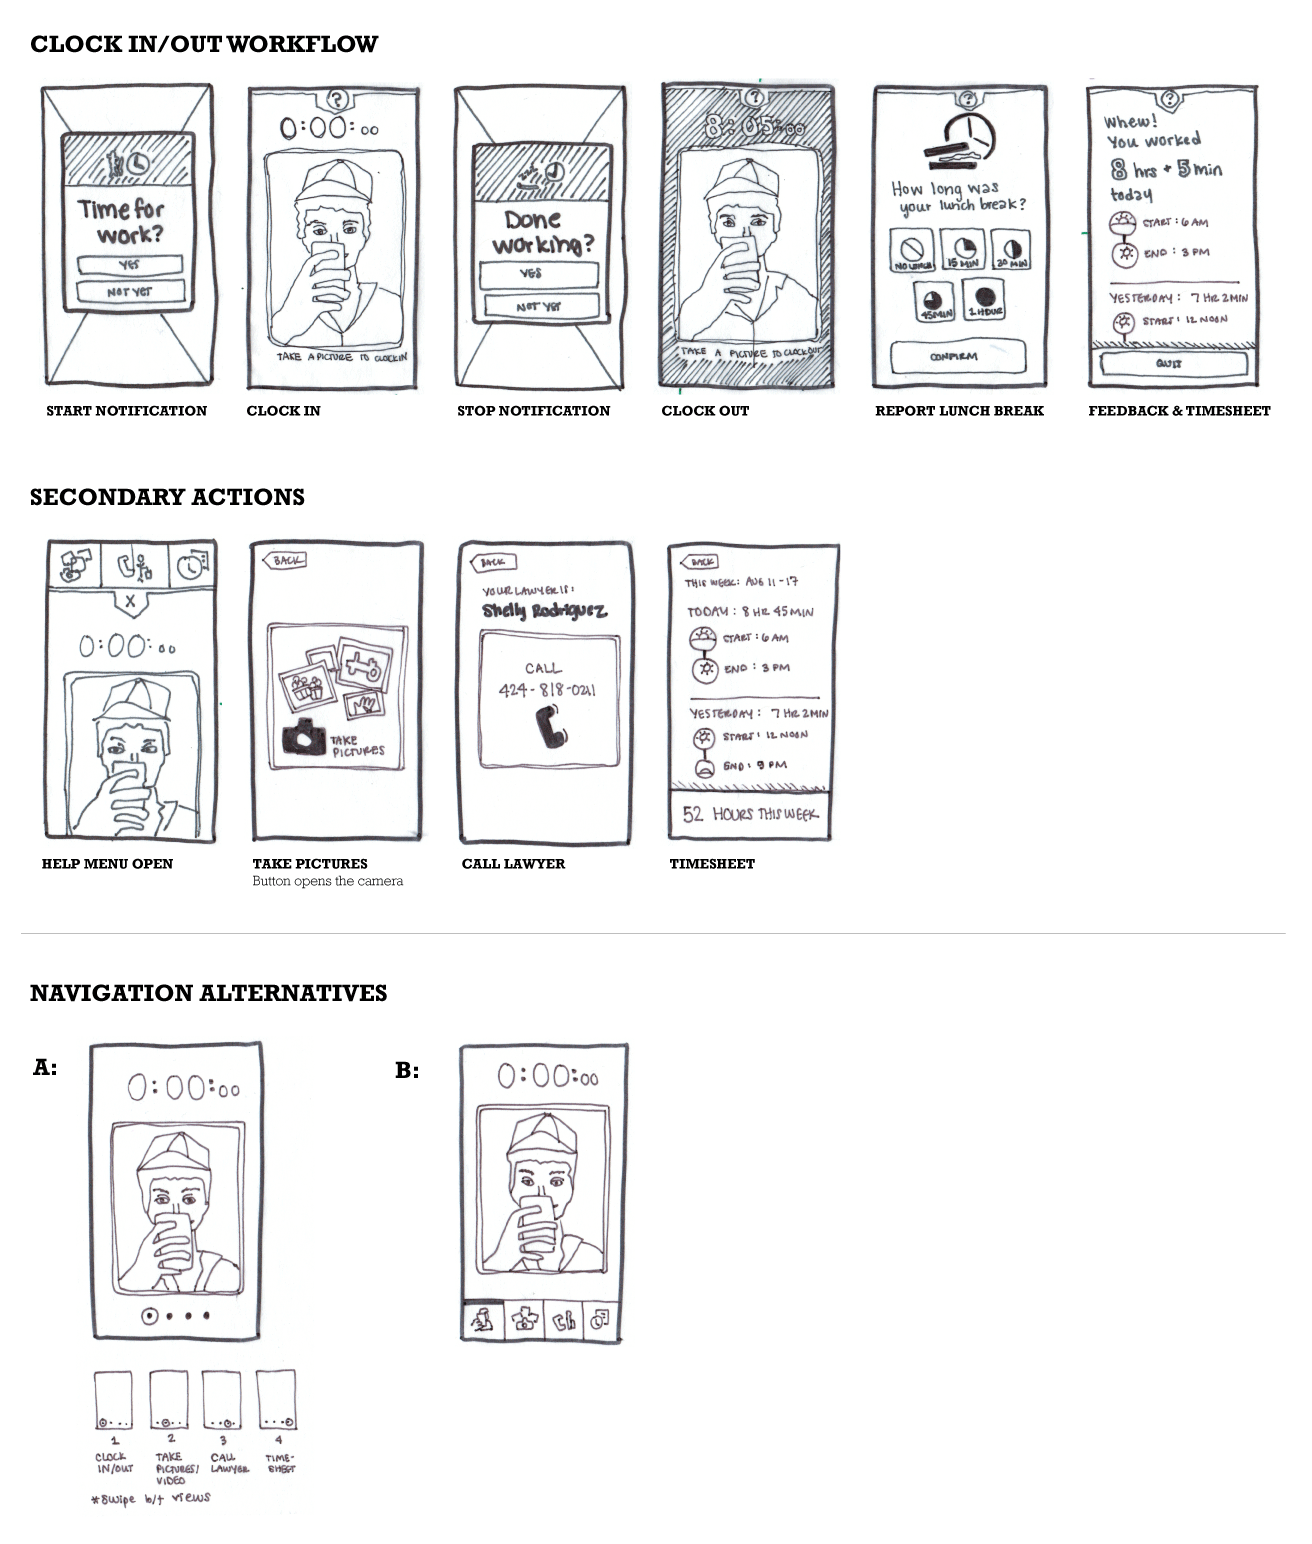 Above: Initial sketches exploring simple navigation options for non-traditional smartphone users.